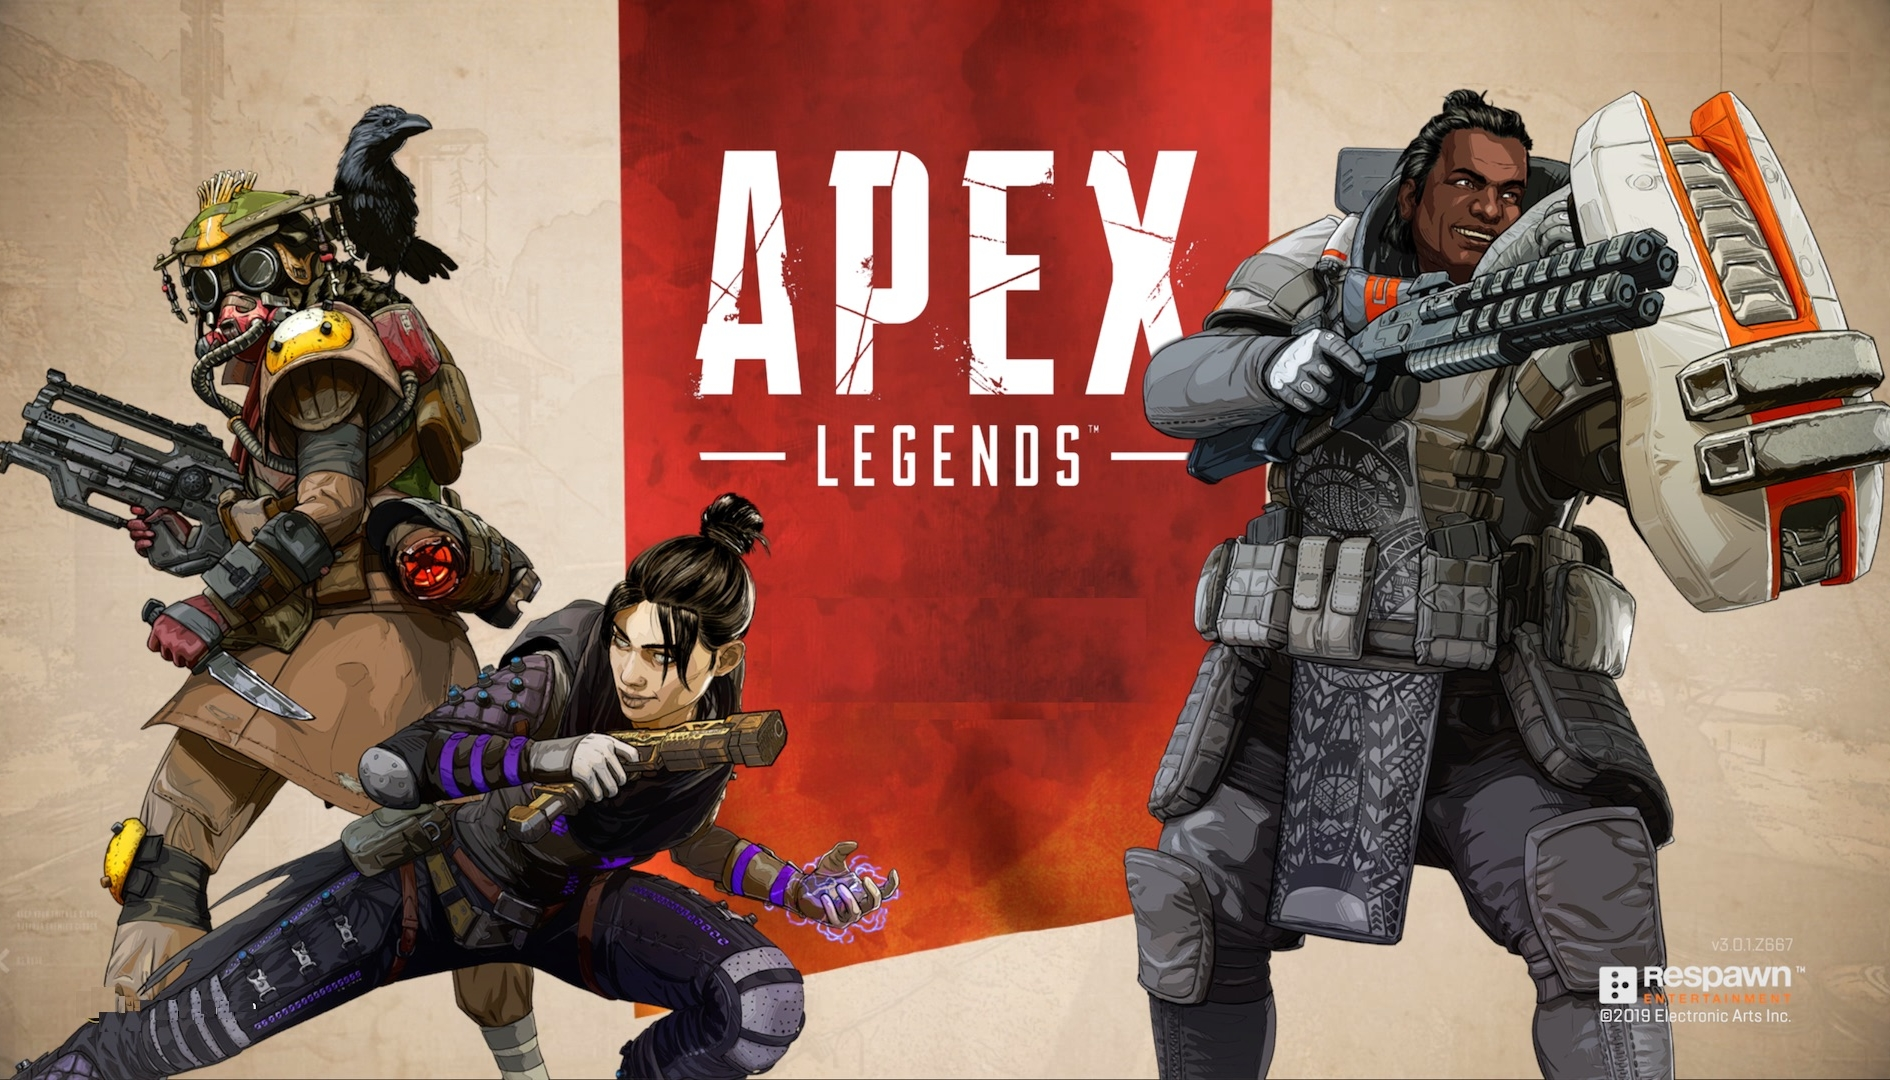 Apex Legends finalmente anche su Nintendo Switch, ecco la data!